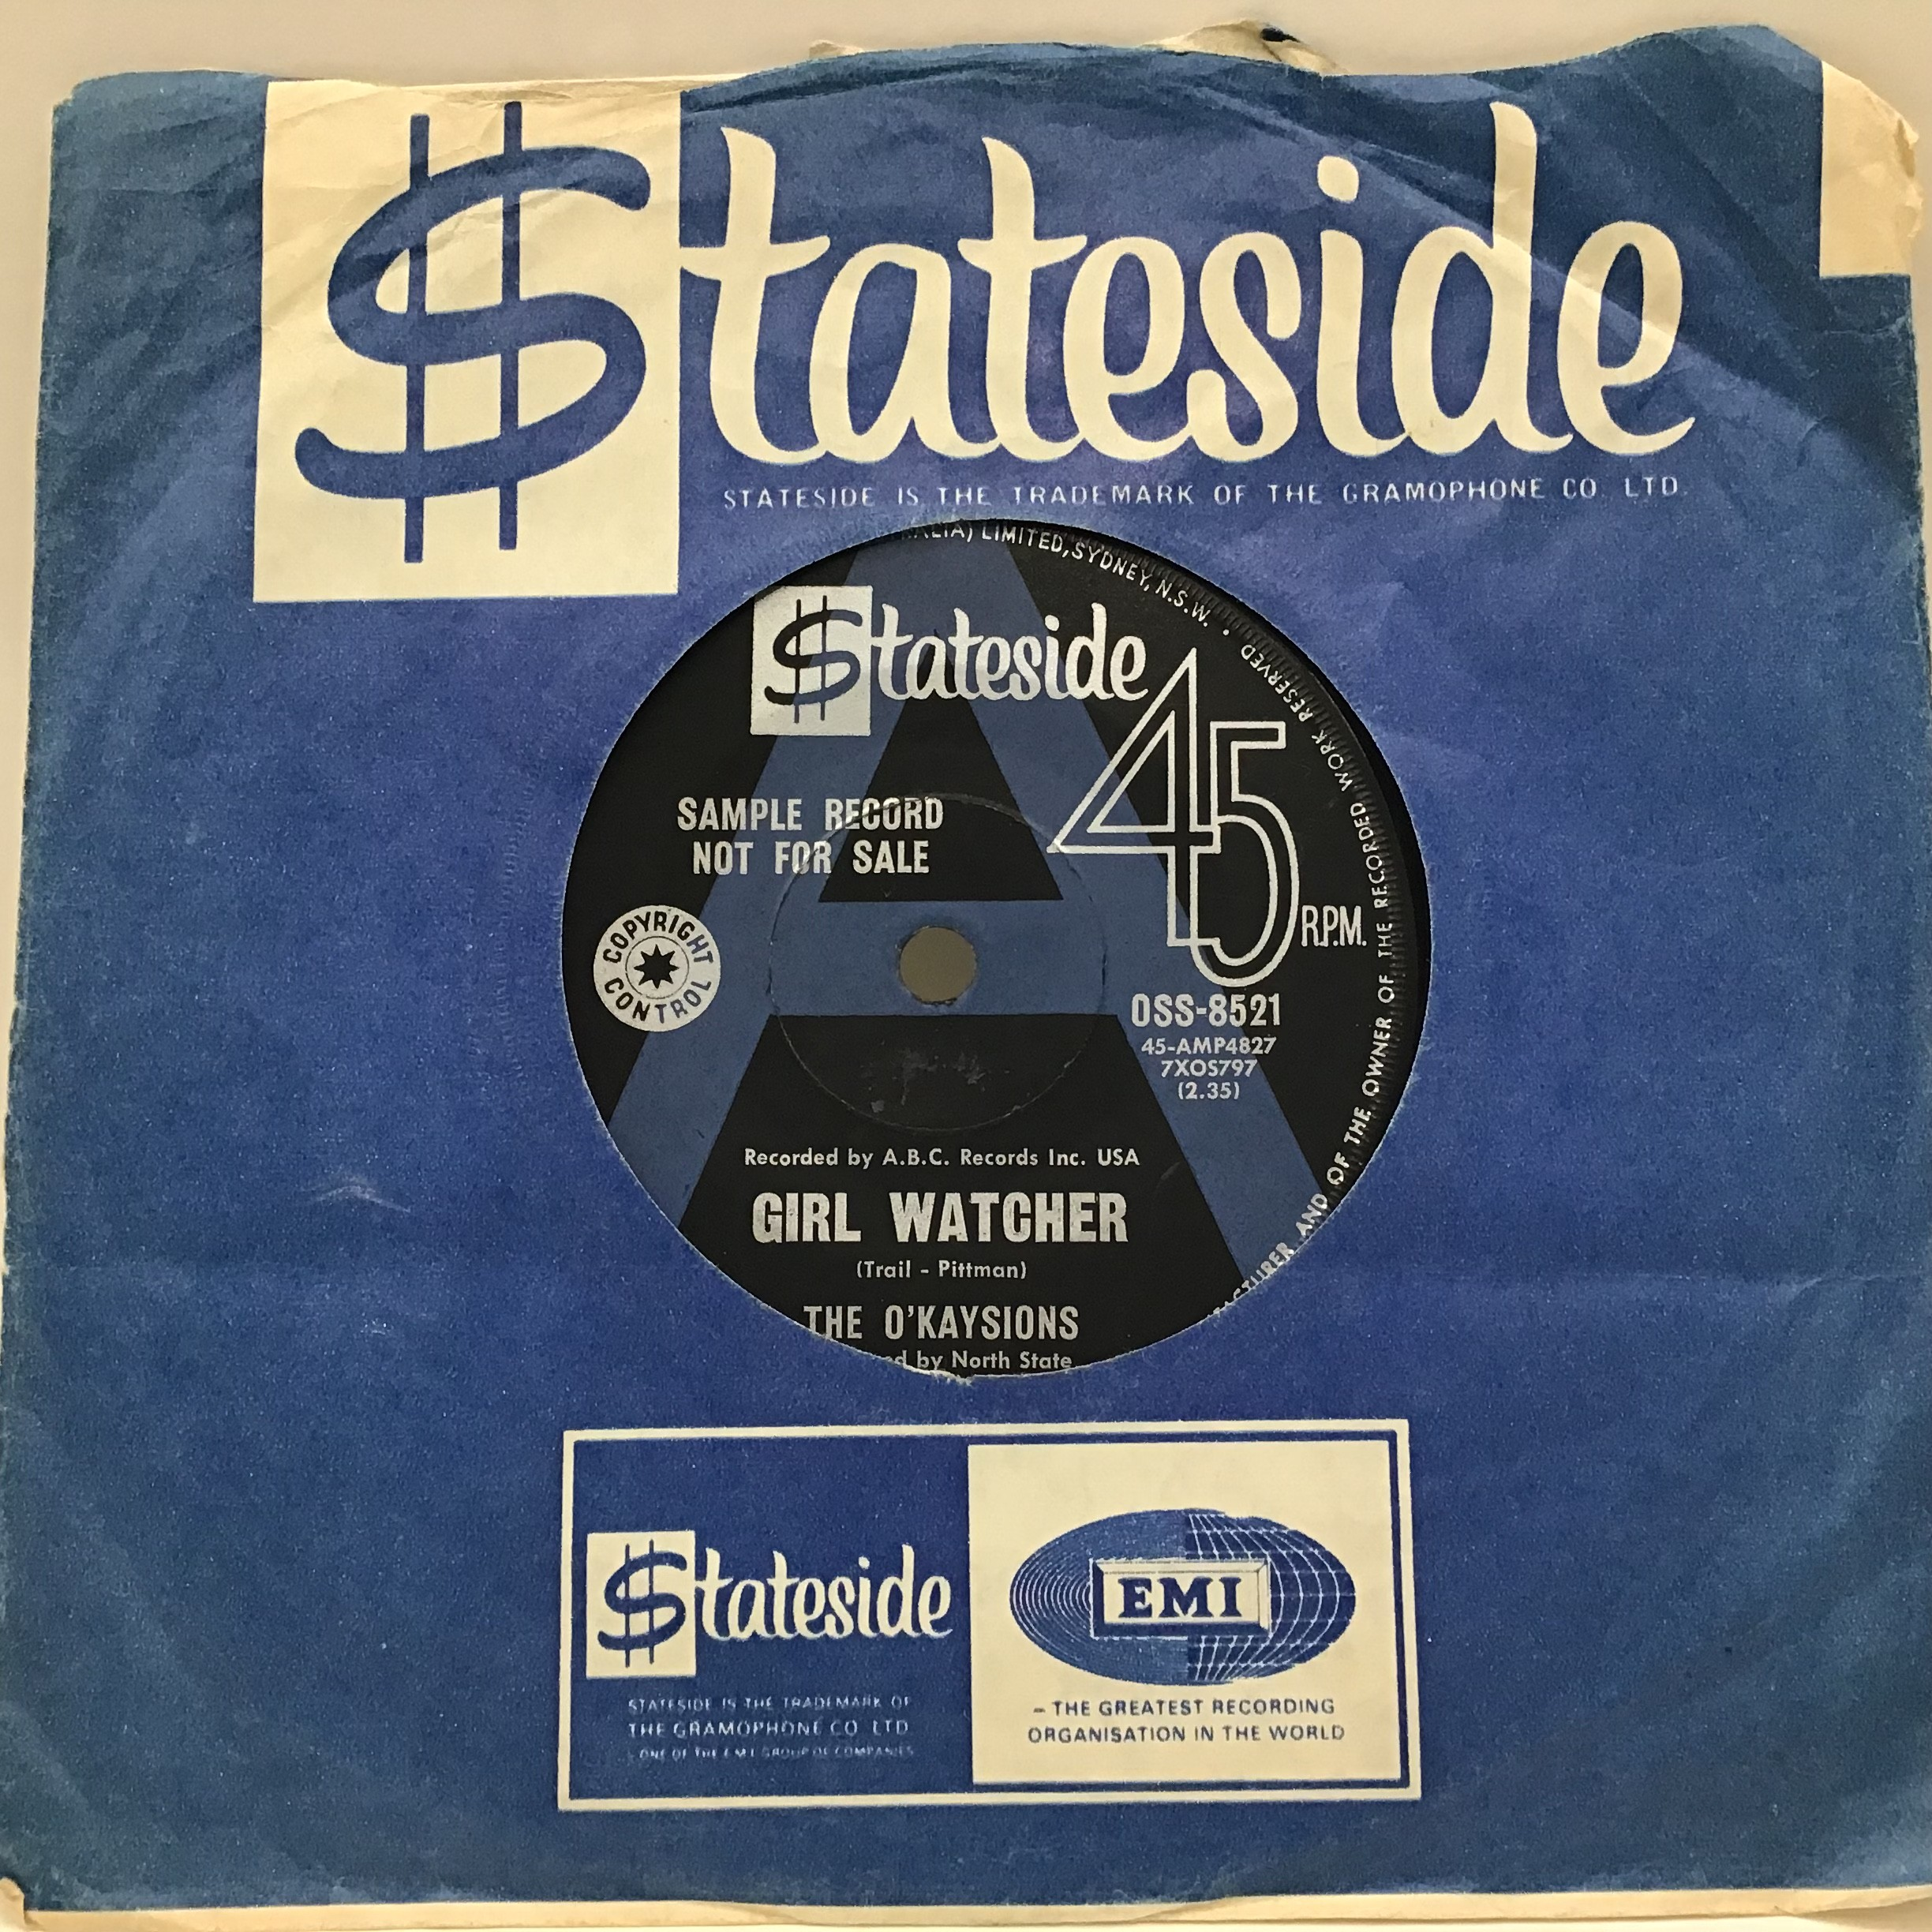 The O kaysions - Girl Watcher / Deal Me In 7? vinyl single from 1968 on Australian Stateside